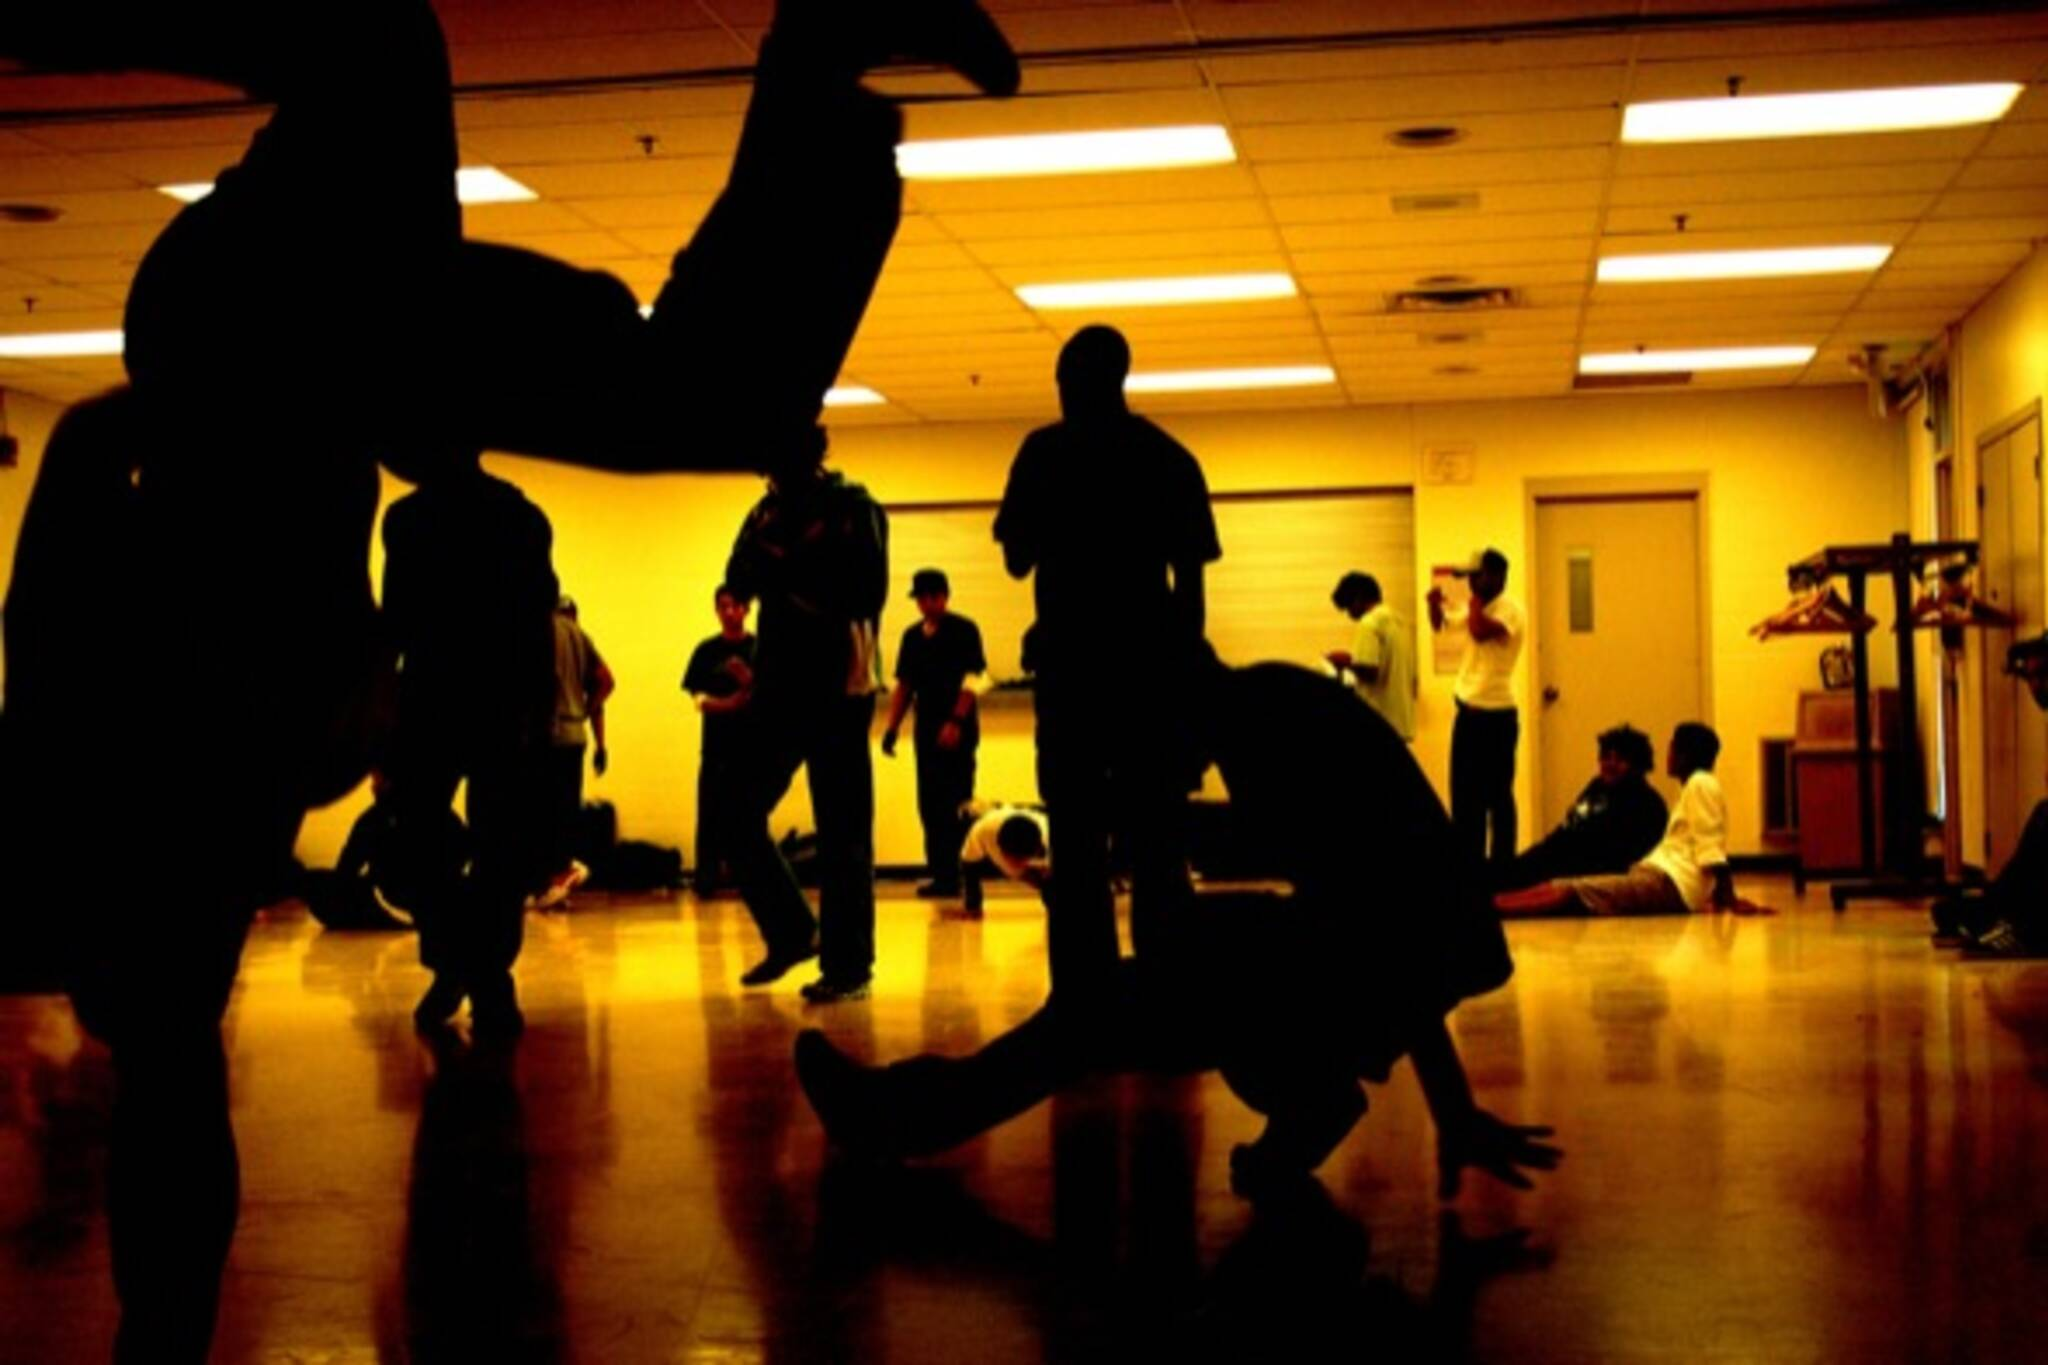 UNITY Charity hosts Breaking the Cycle: Canadian Break Dancing Championships